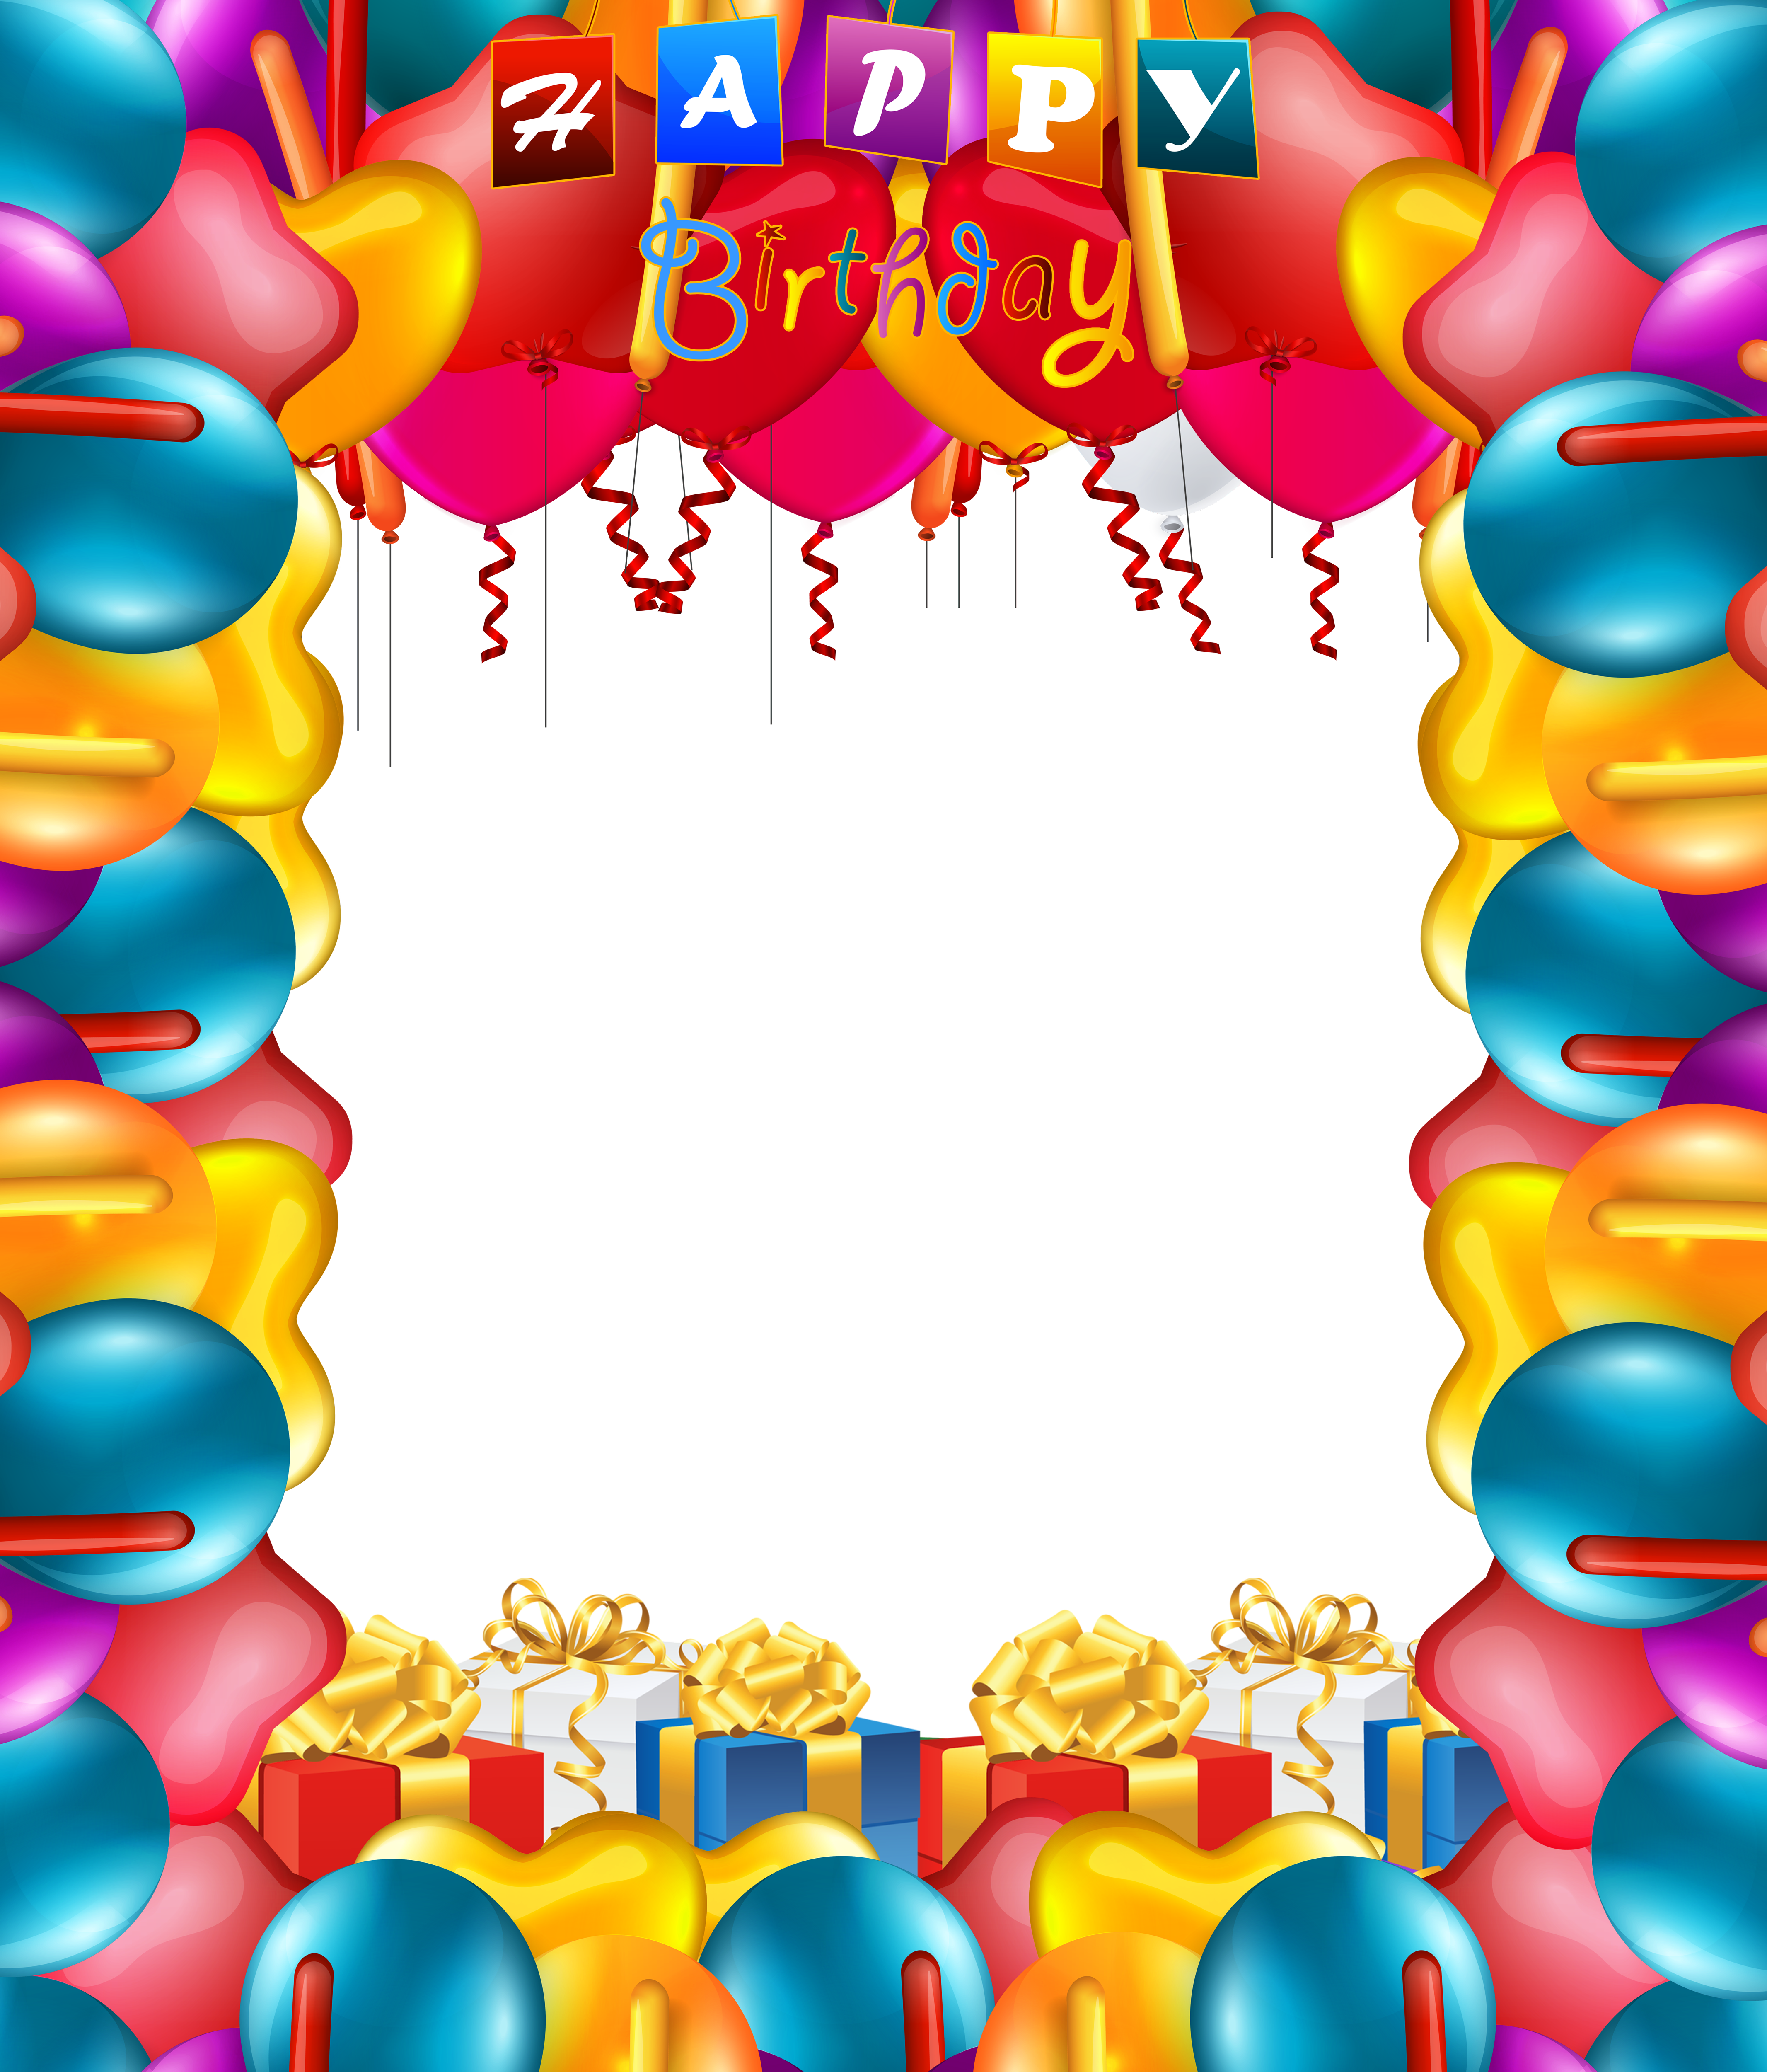 Birthday balloons border png. Happy transparent frame gallery